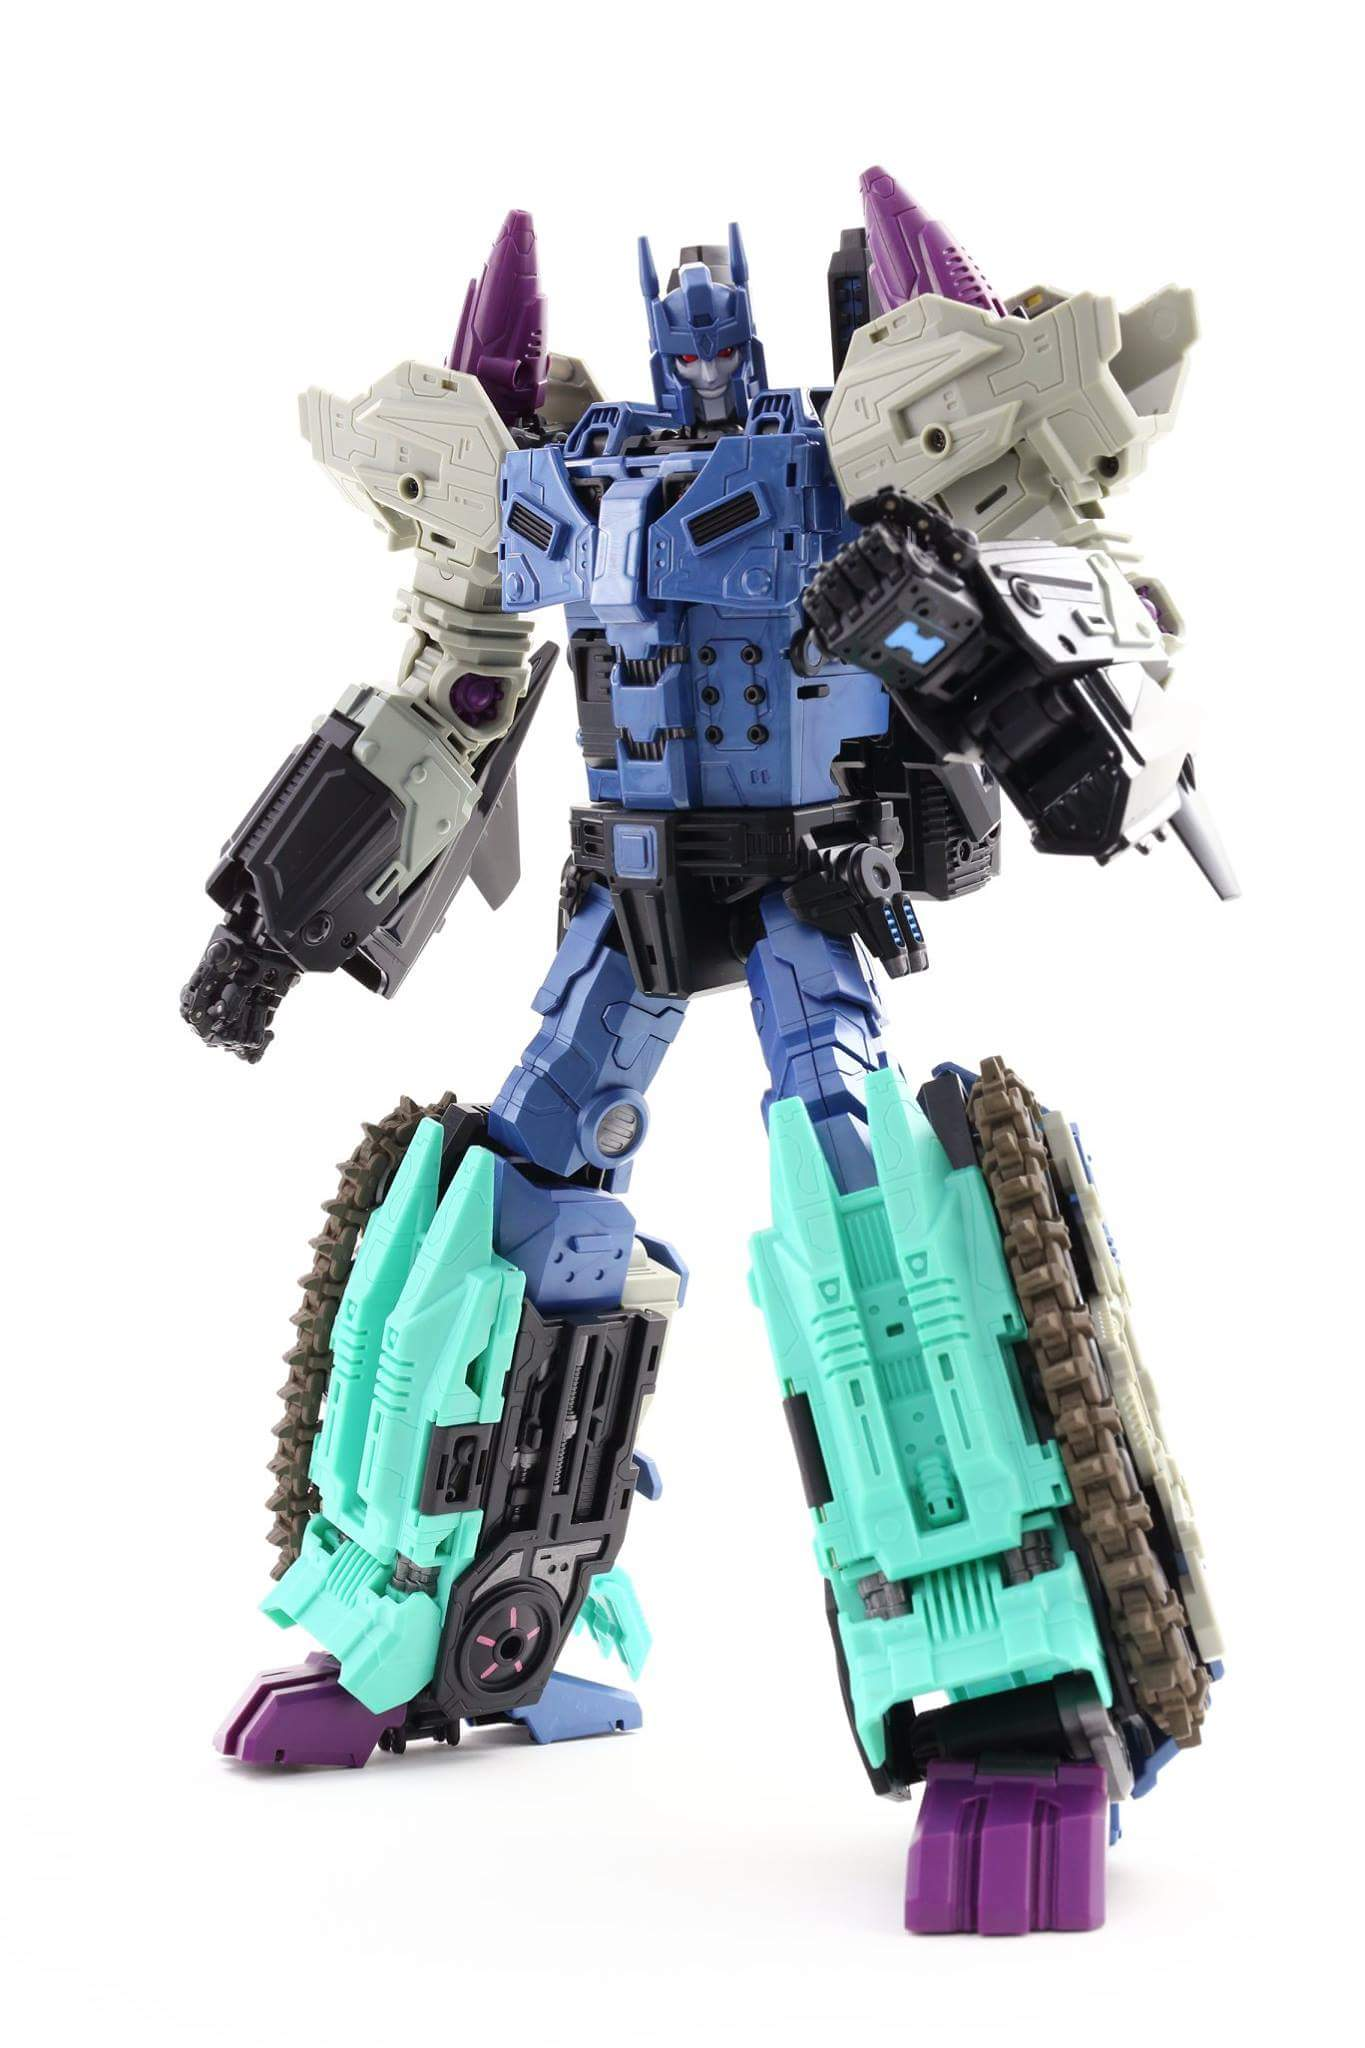 [Mastermind Creations] Produit Tiers - R-17 Carnifex - aka Overlord (TF Masterforce) - Page 3 NaOJOUPi